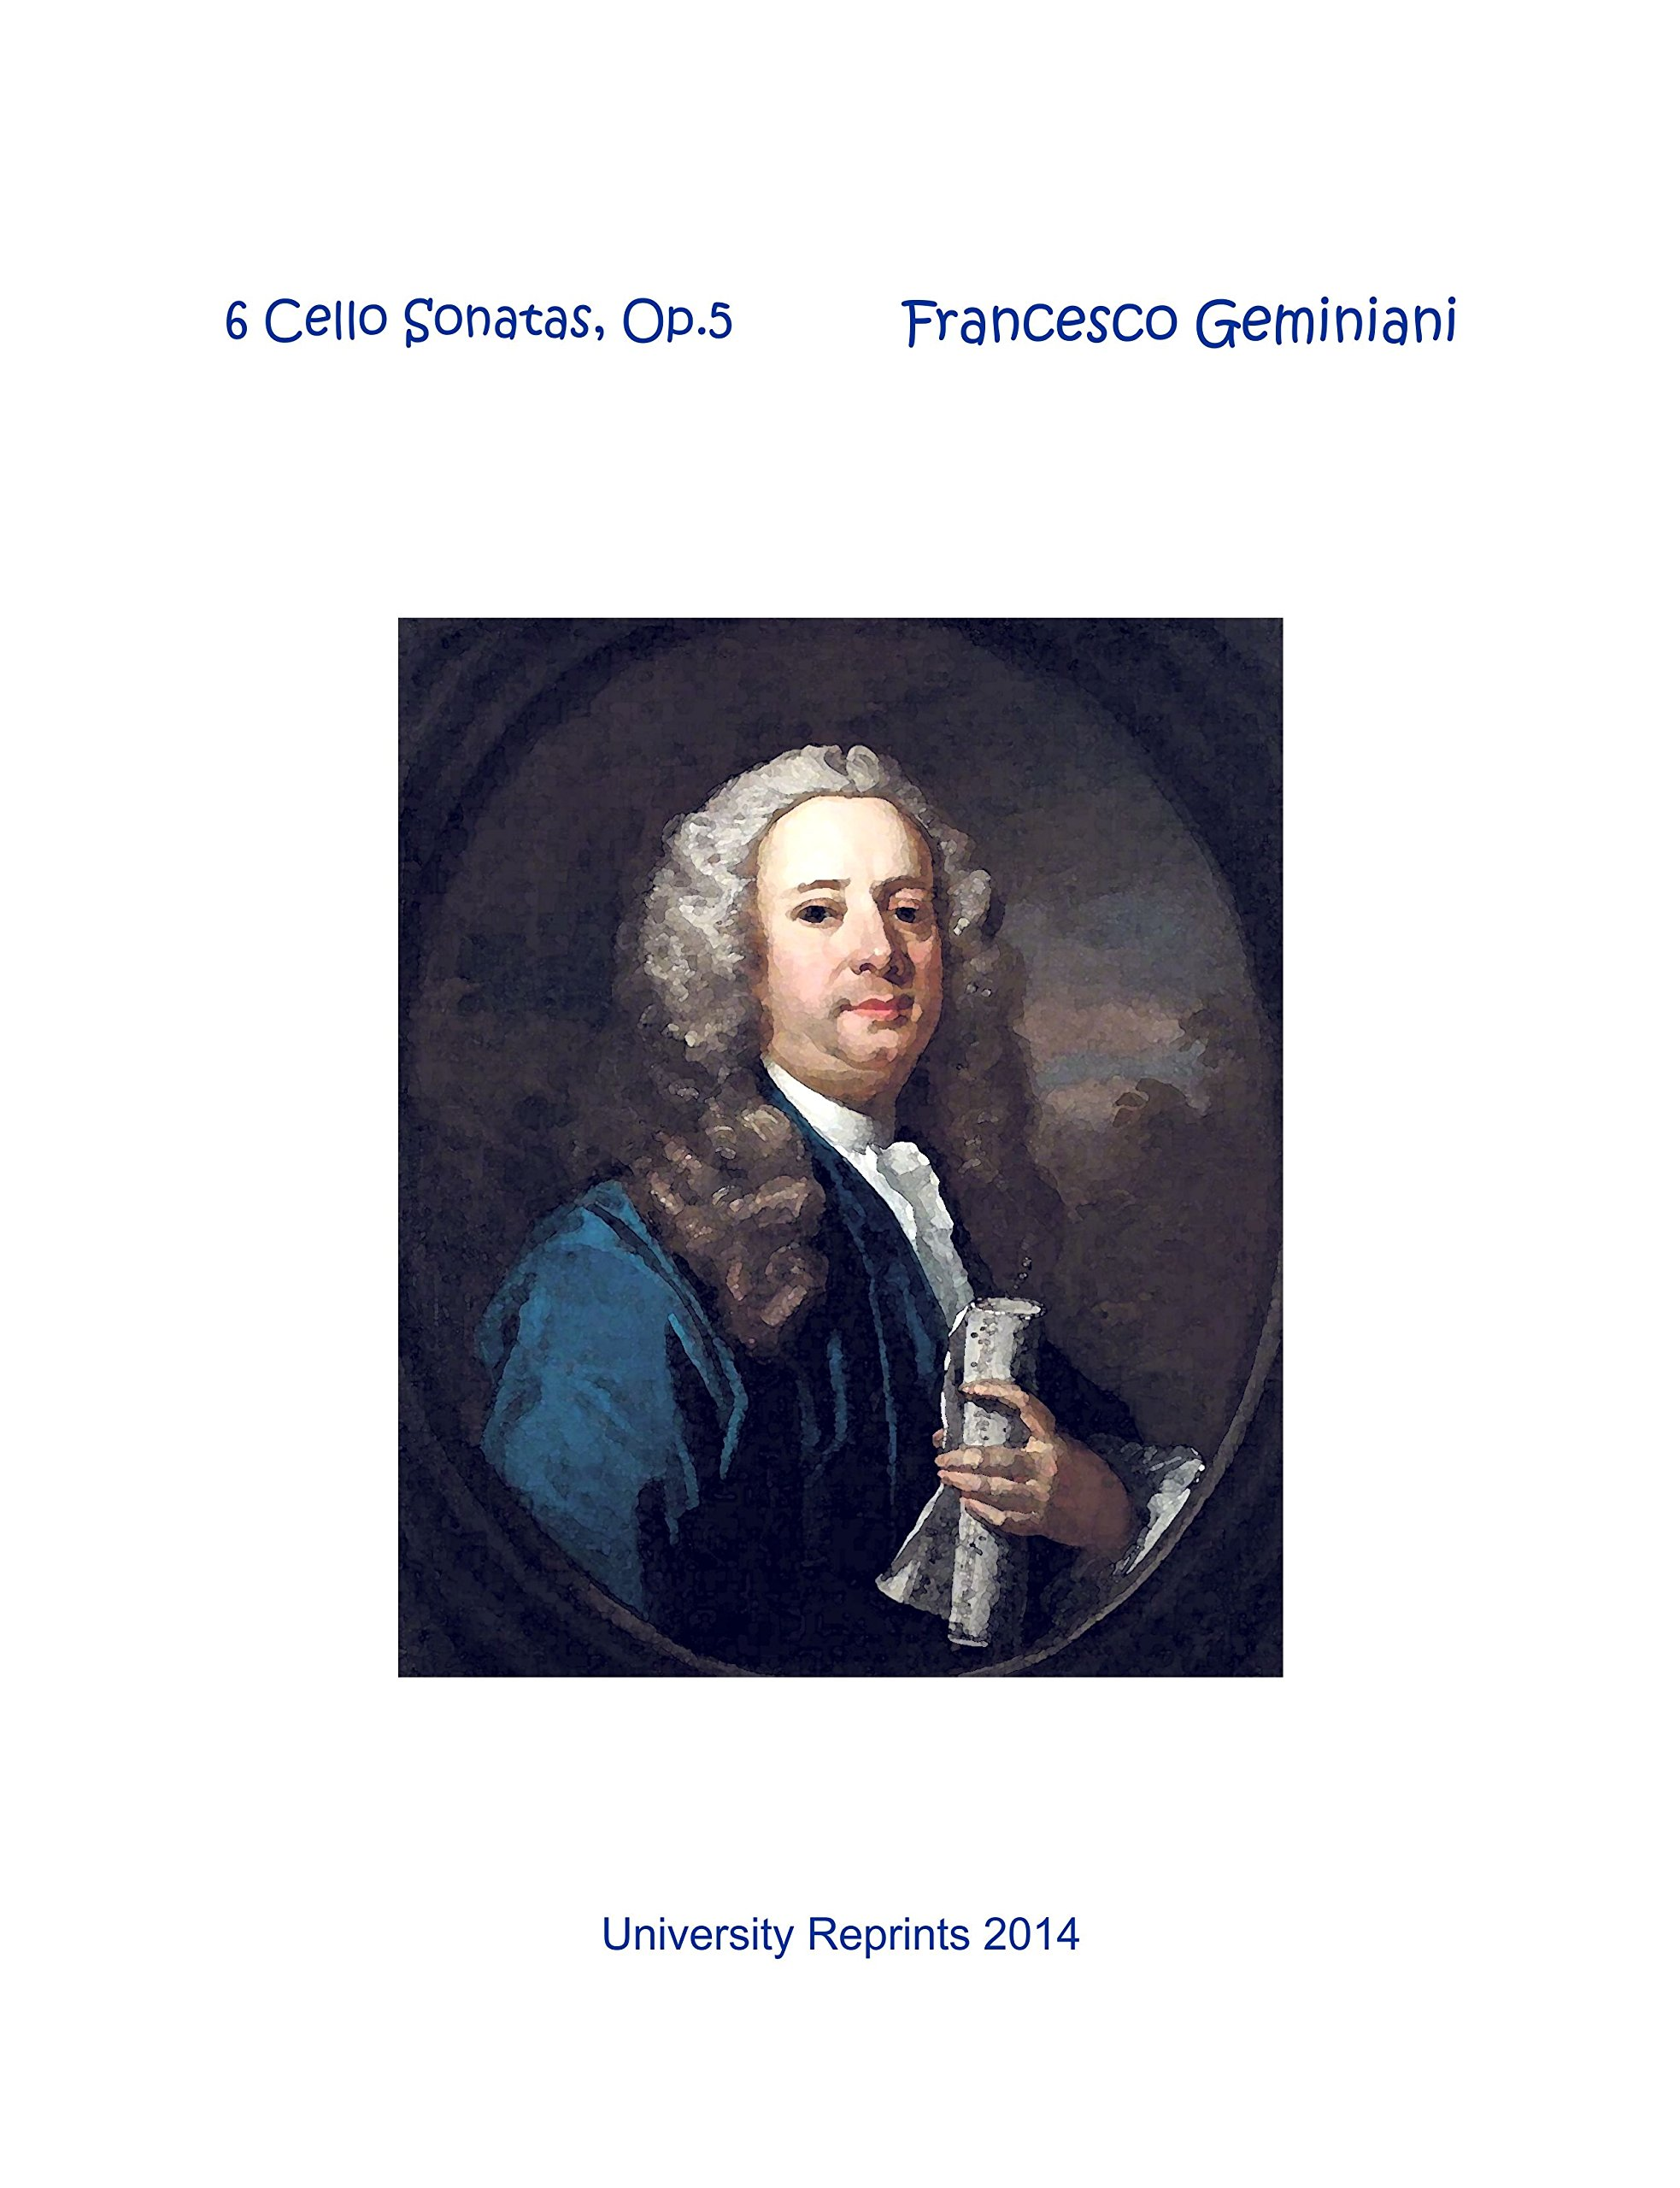 Download 6 Cello Sonatas, Op.5 by Francesco Geminiani. Complete Score. [Student Loose Leaf Facsimile Edition. Re-Imaged from Original for Greater Clarity. 2014] ebook